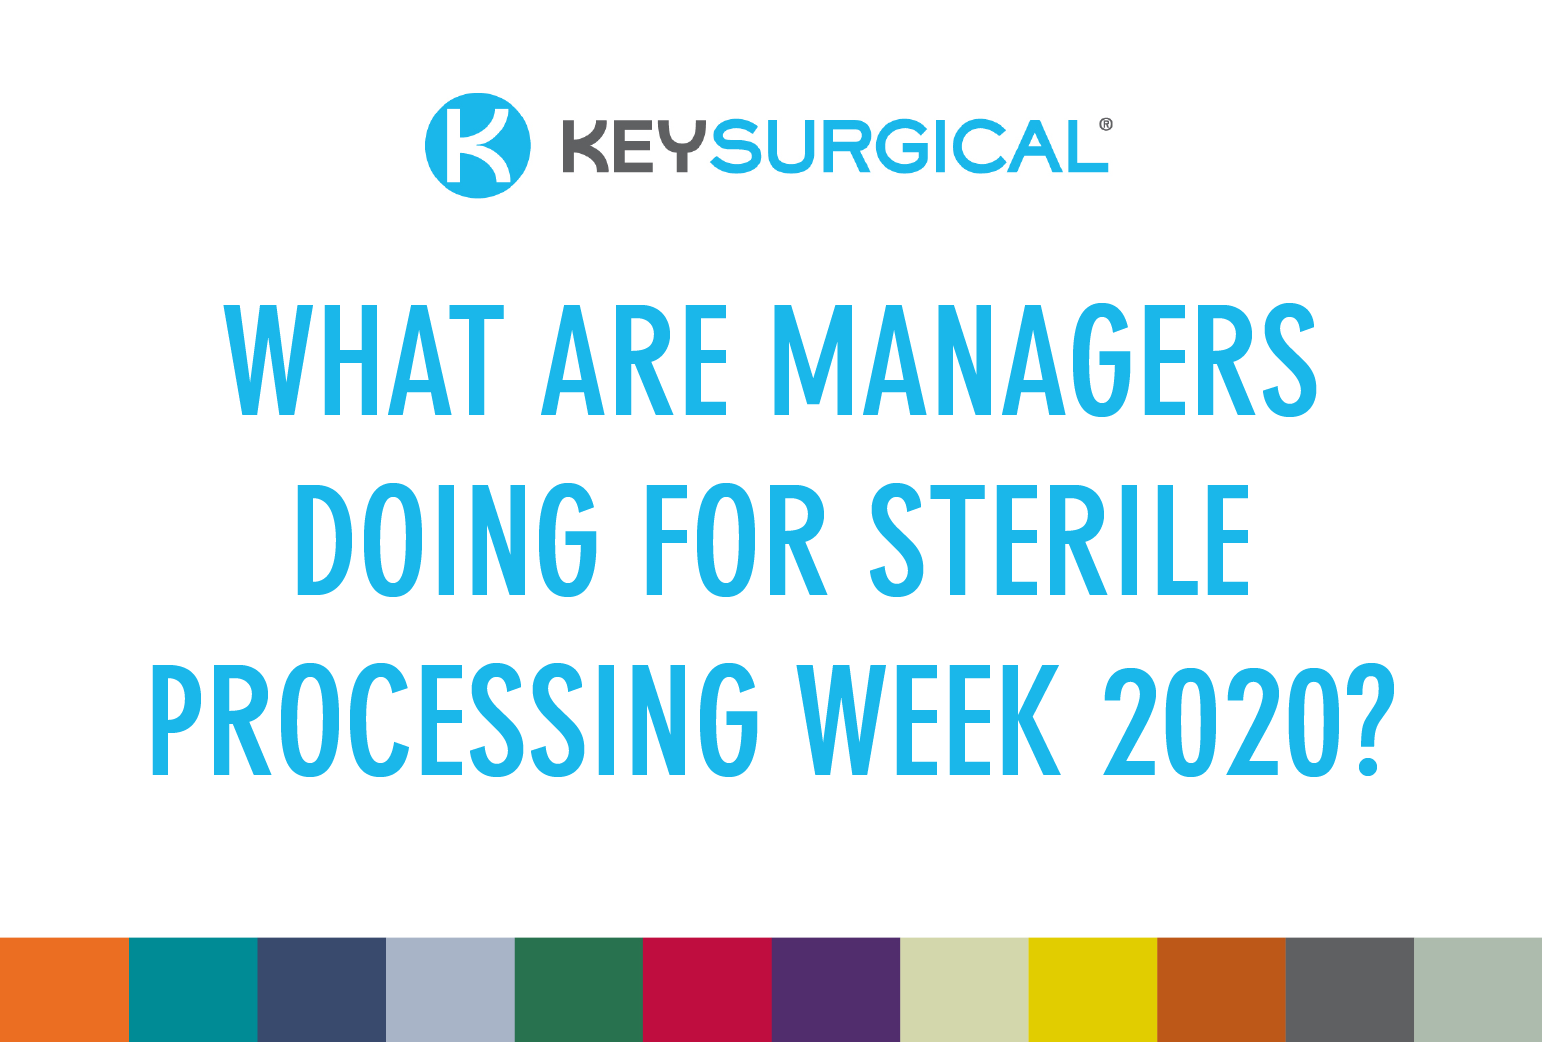 What Are Managers Doing for Sterile Processing Week?